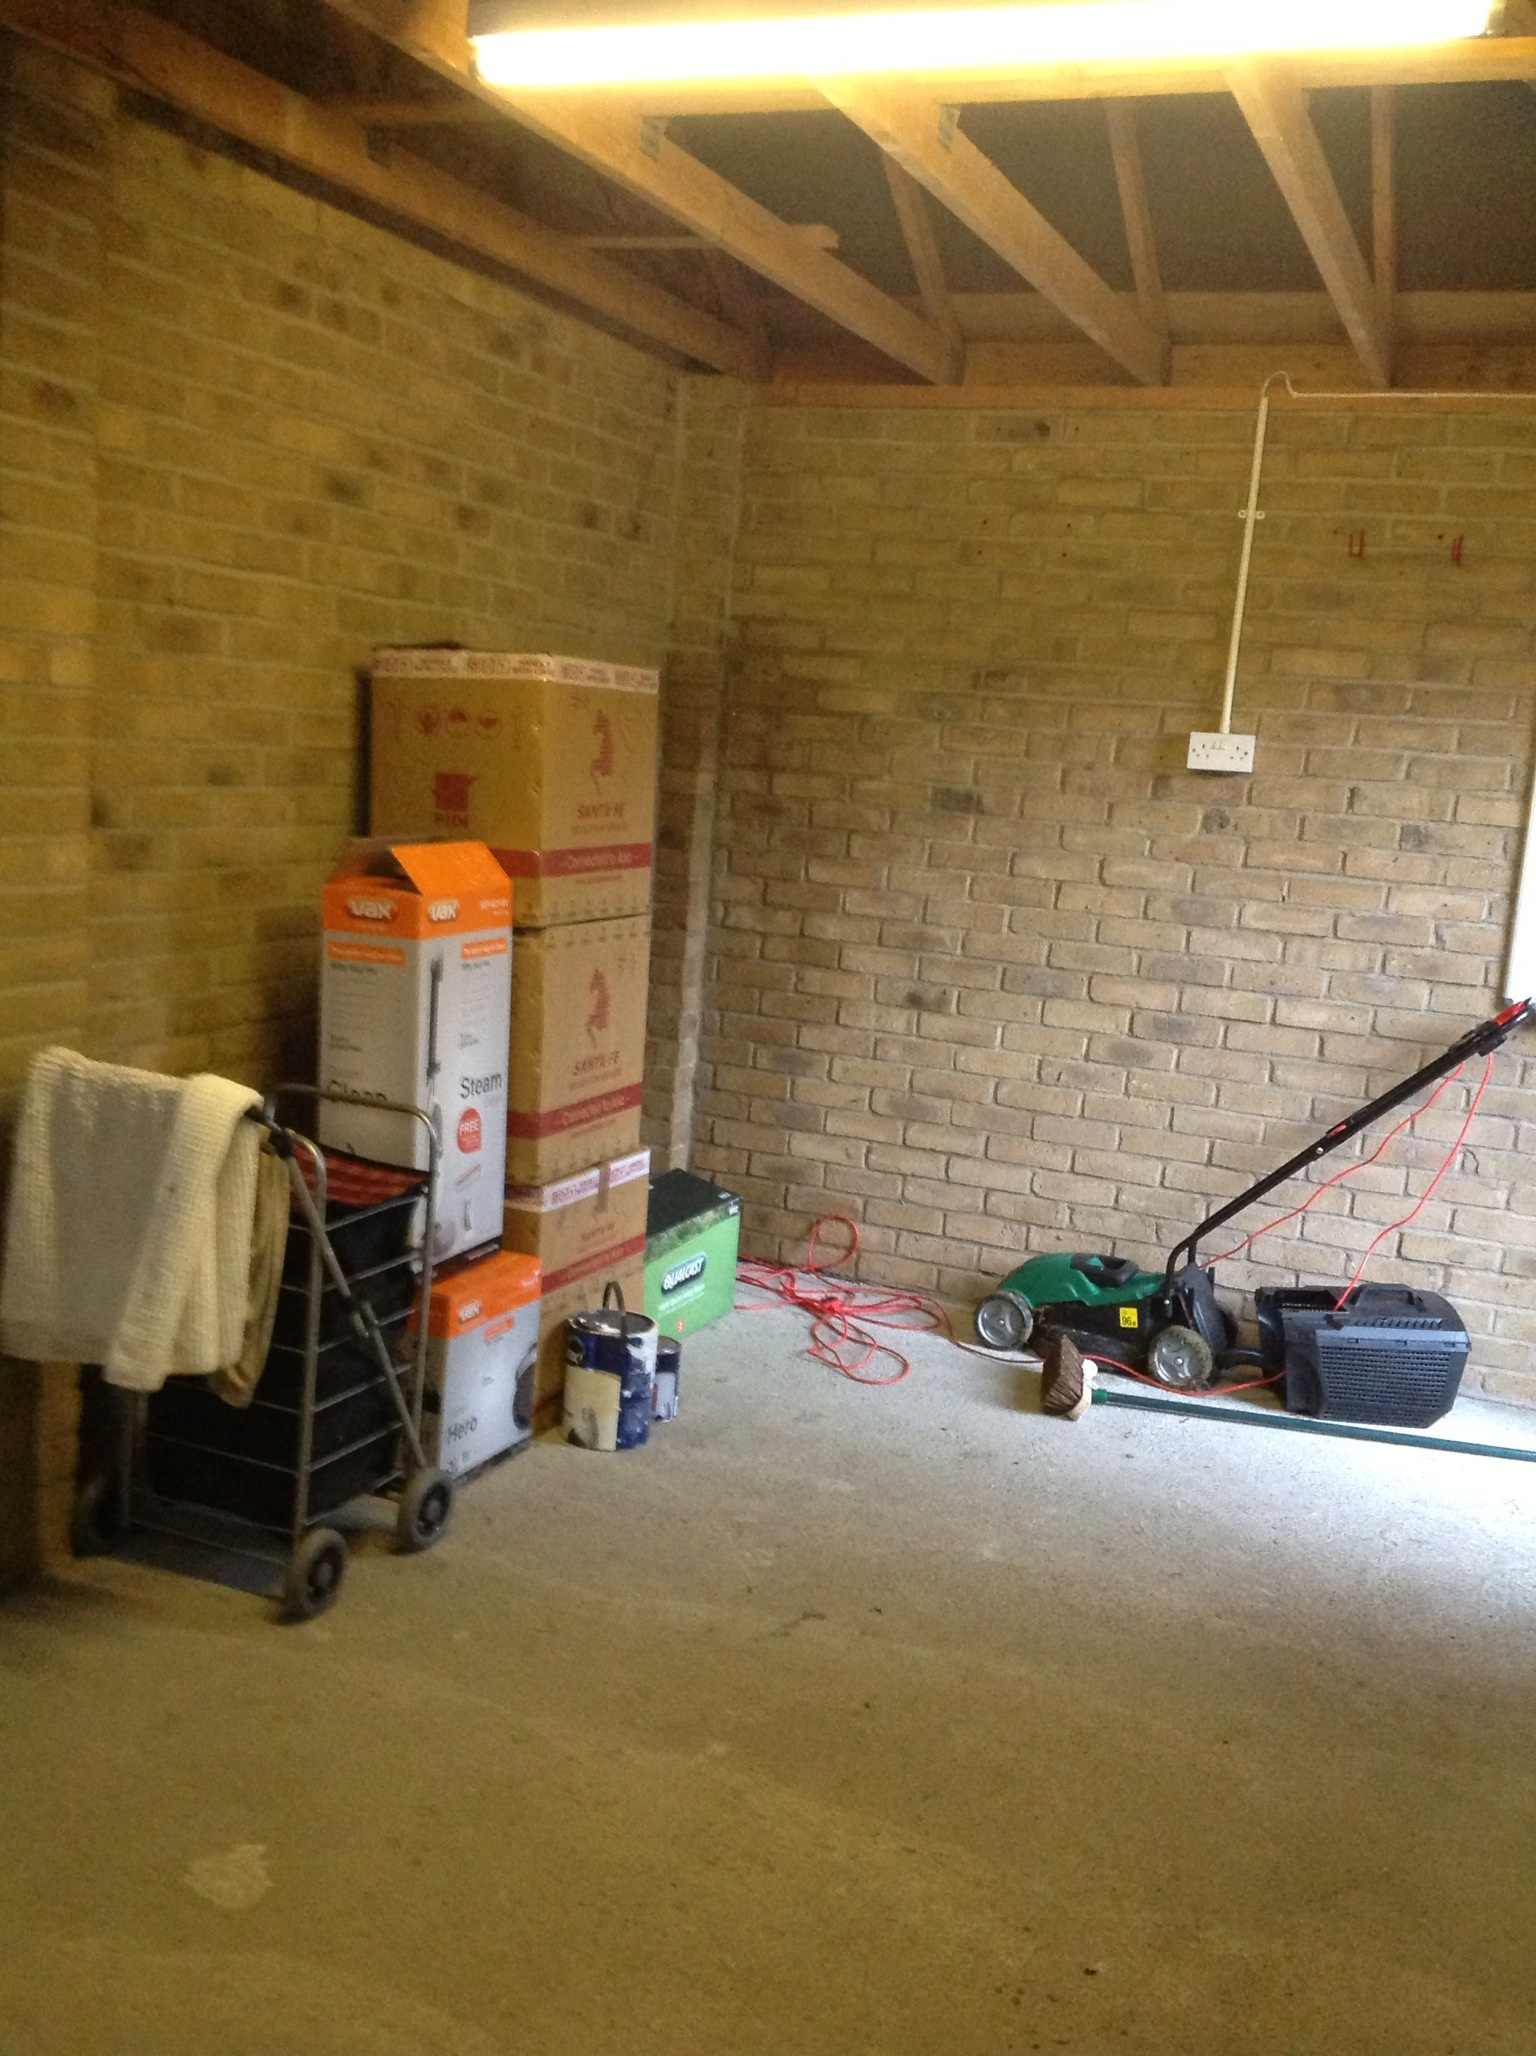 on chafford picture thurrock for rent image garage neighbourhood hundred storage